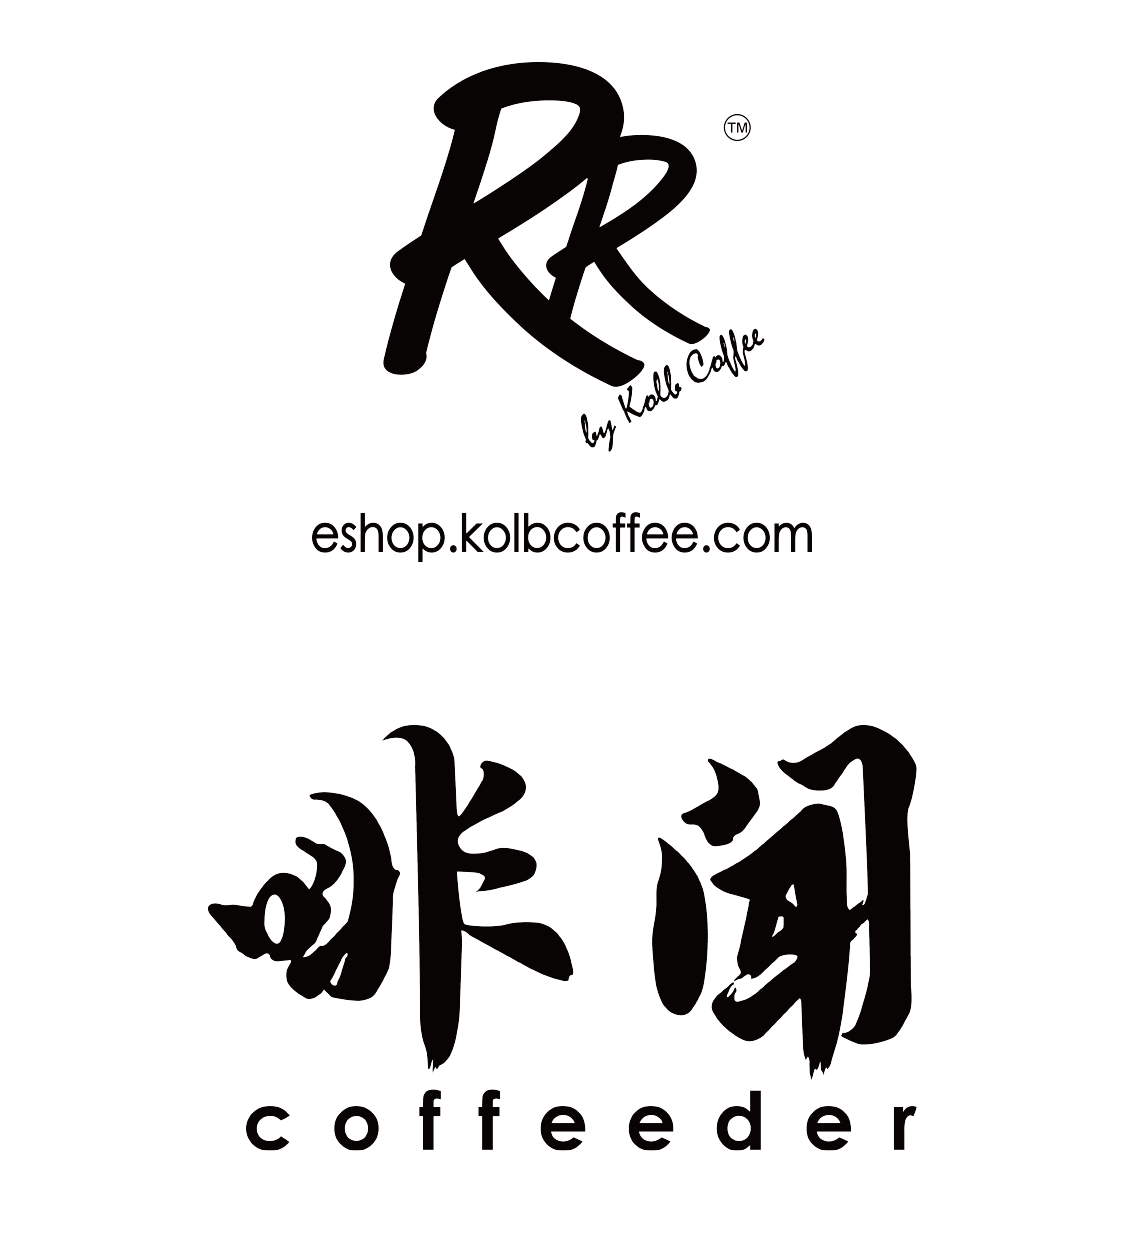 Kolb Coffee & 啡聞